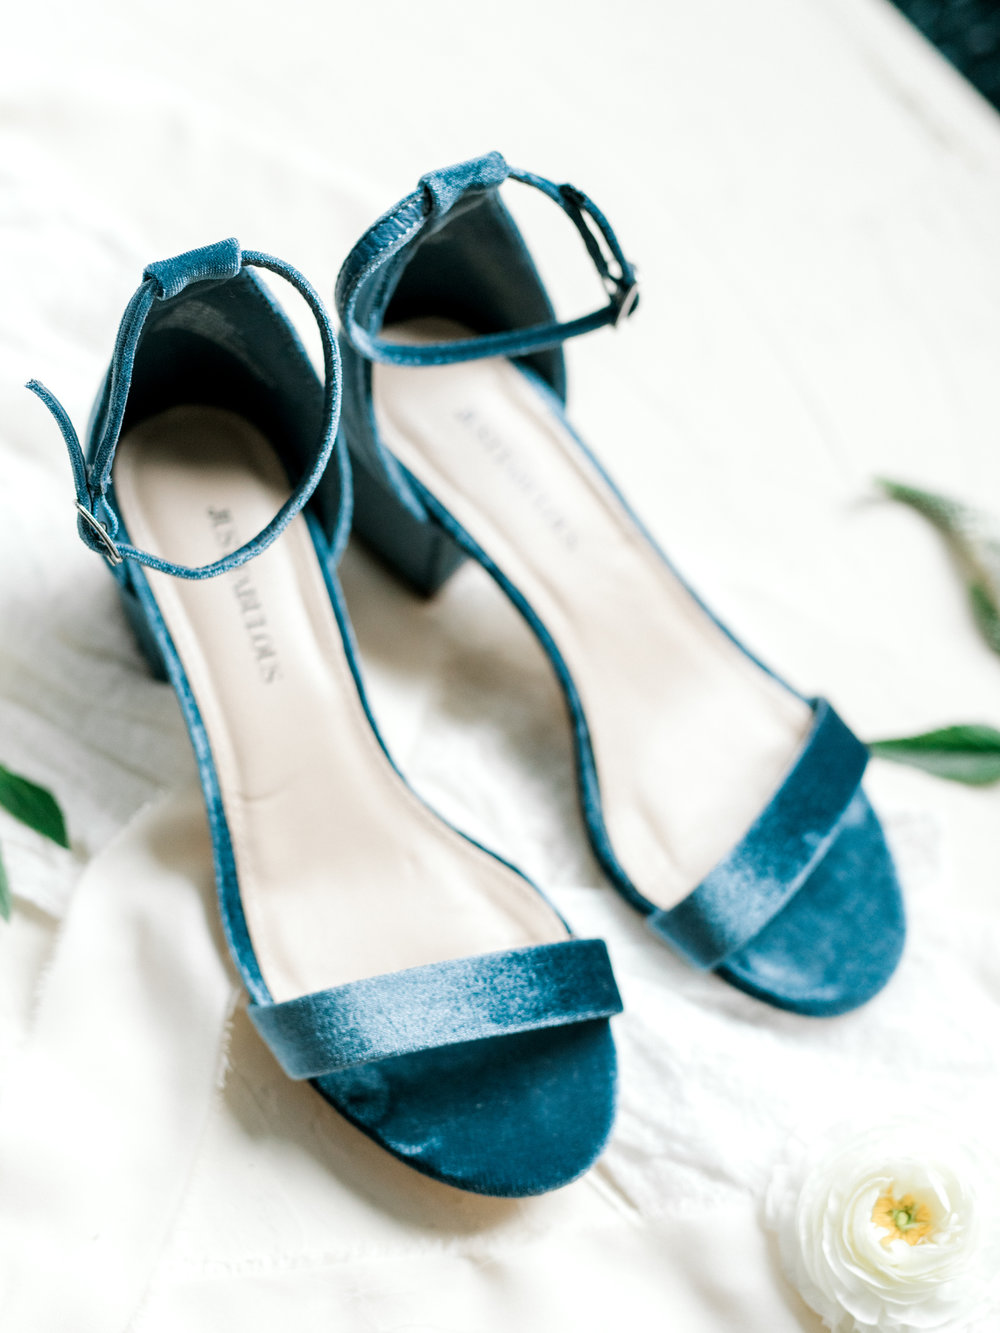 Velvet is in, and these elegant blue block heels from this bright boho chic Tyler Gardens wedding in Bucks County were everything